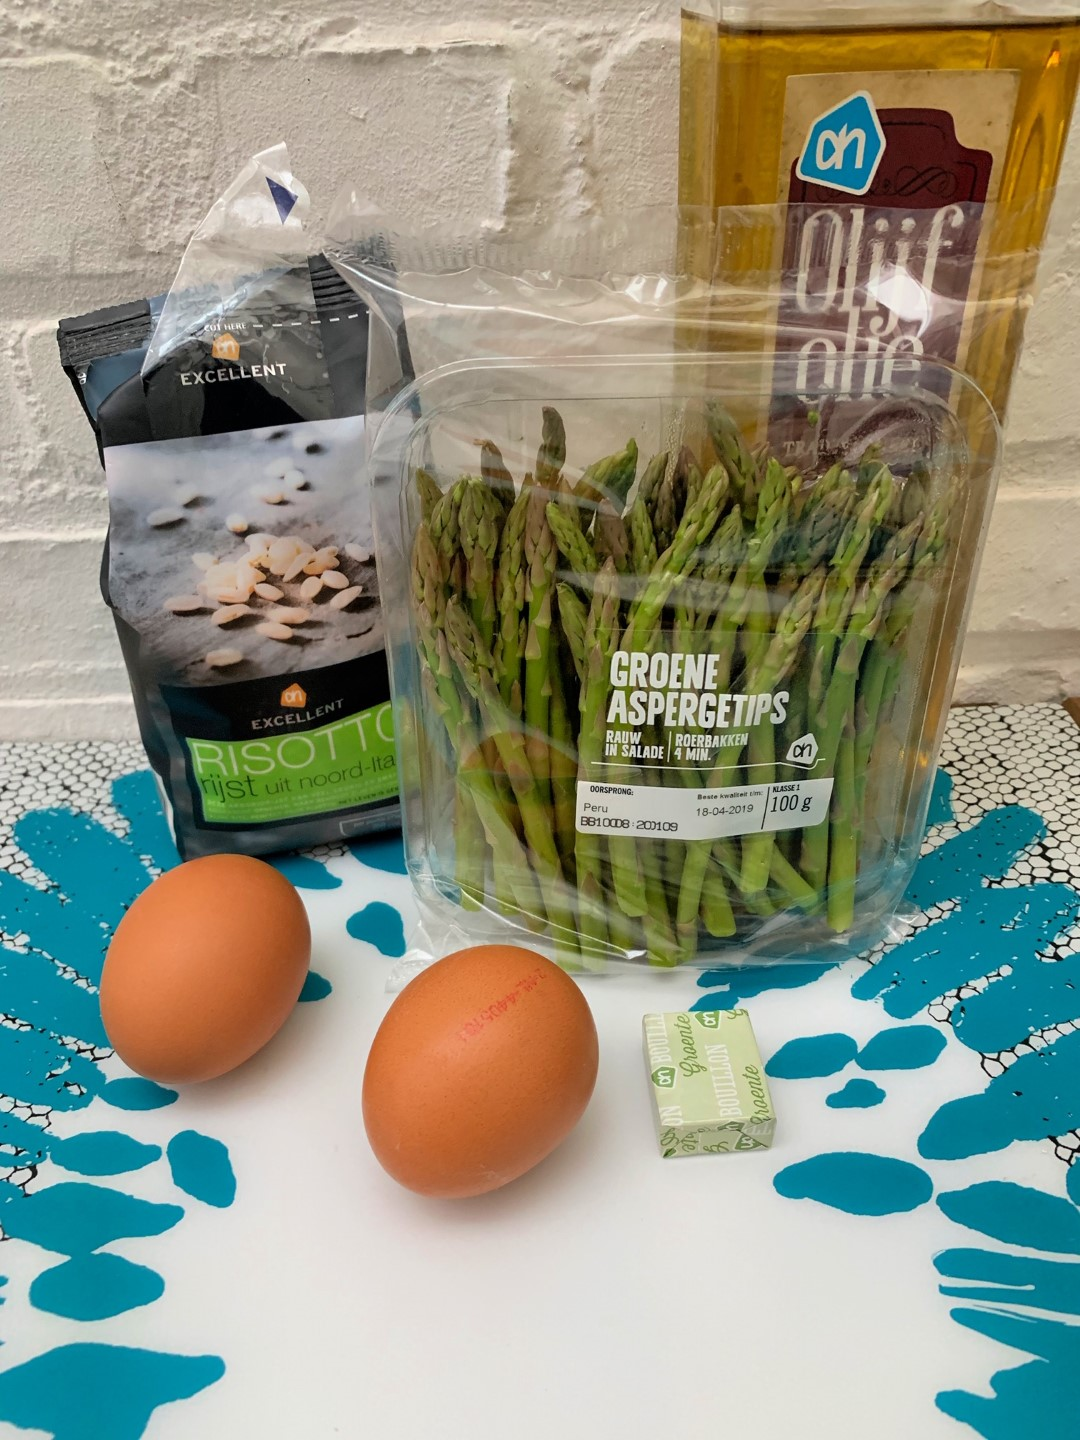 risotto asperges ingredienten